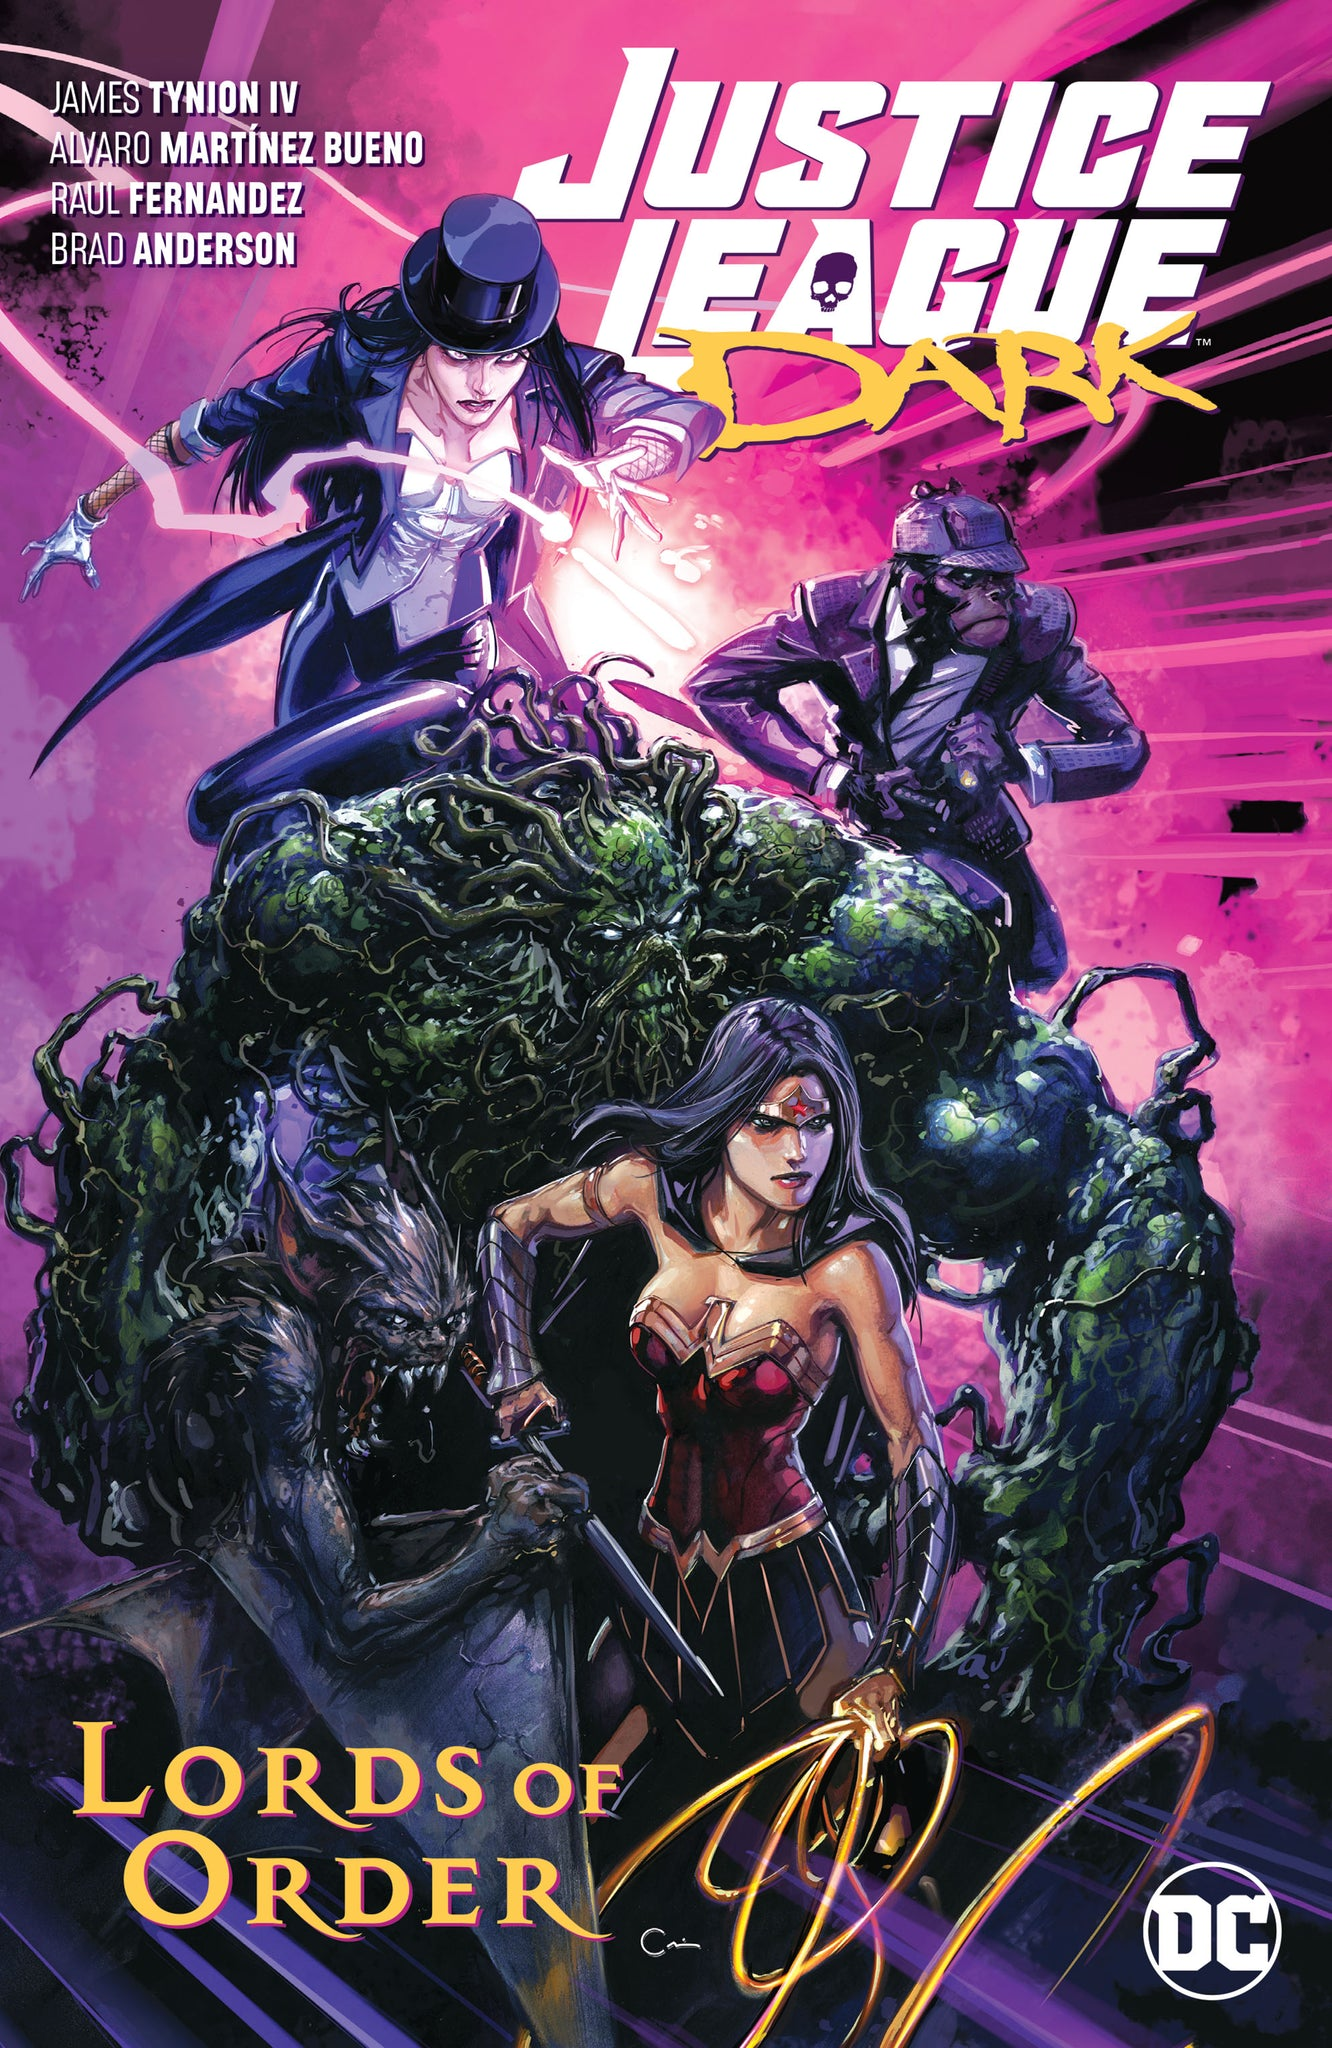 Justice League Dark (2018) Volume 2: Lords of Order